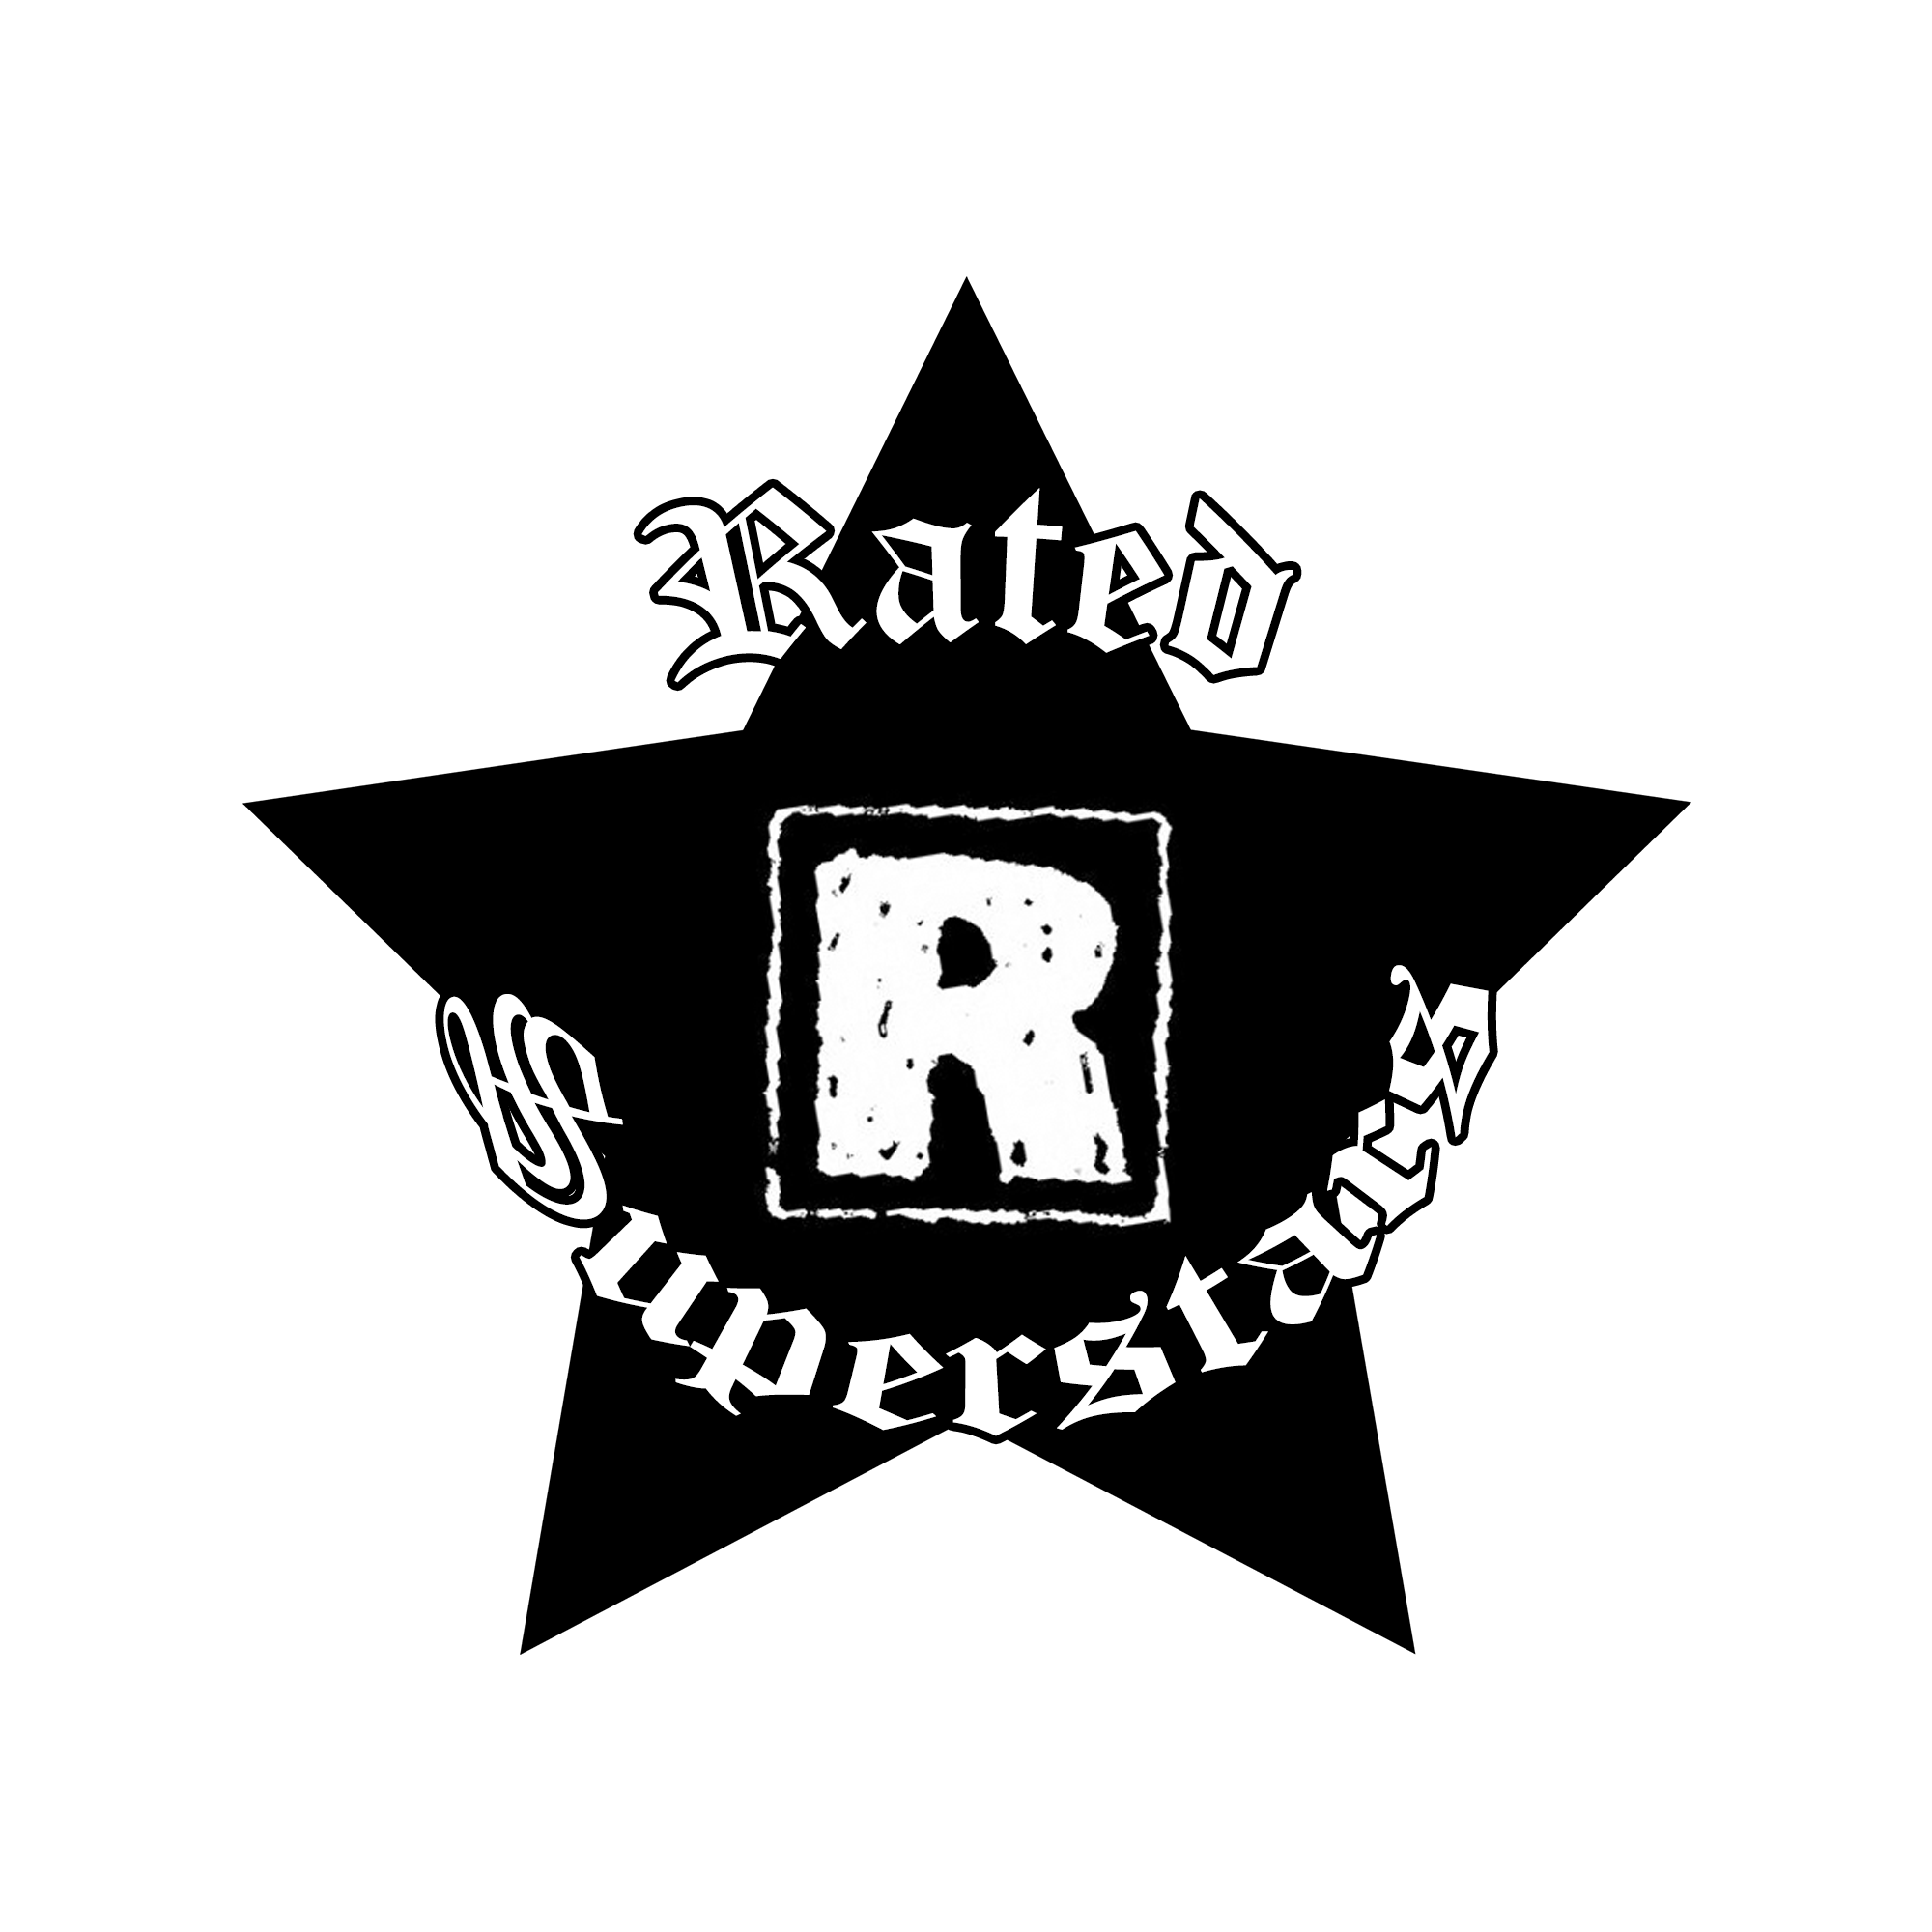 Rated r logo clipart clipart royalty free stock Download Rated R Logo Png () png images - sarfrance.net clipart royalty free stock